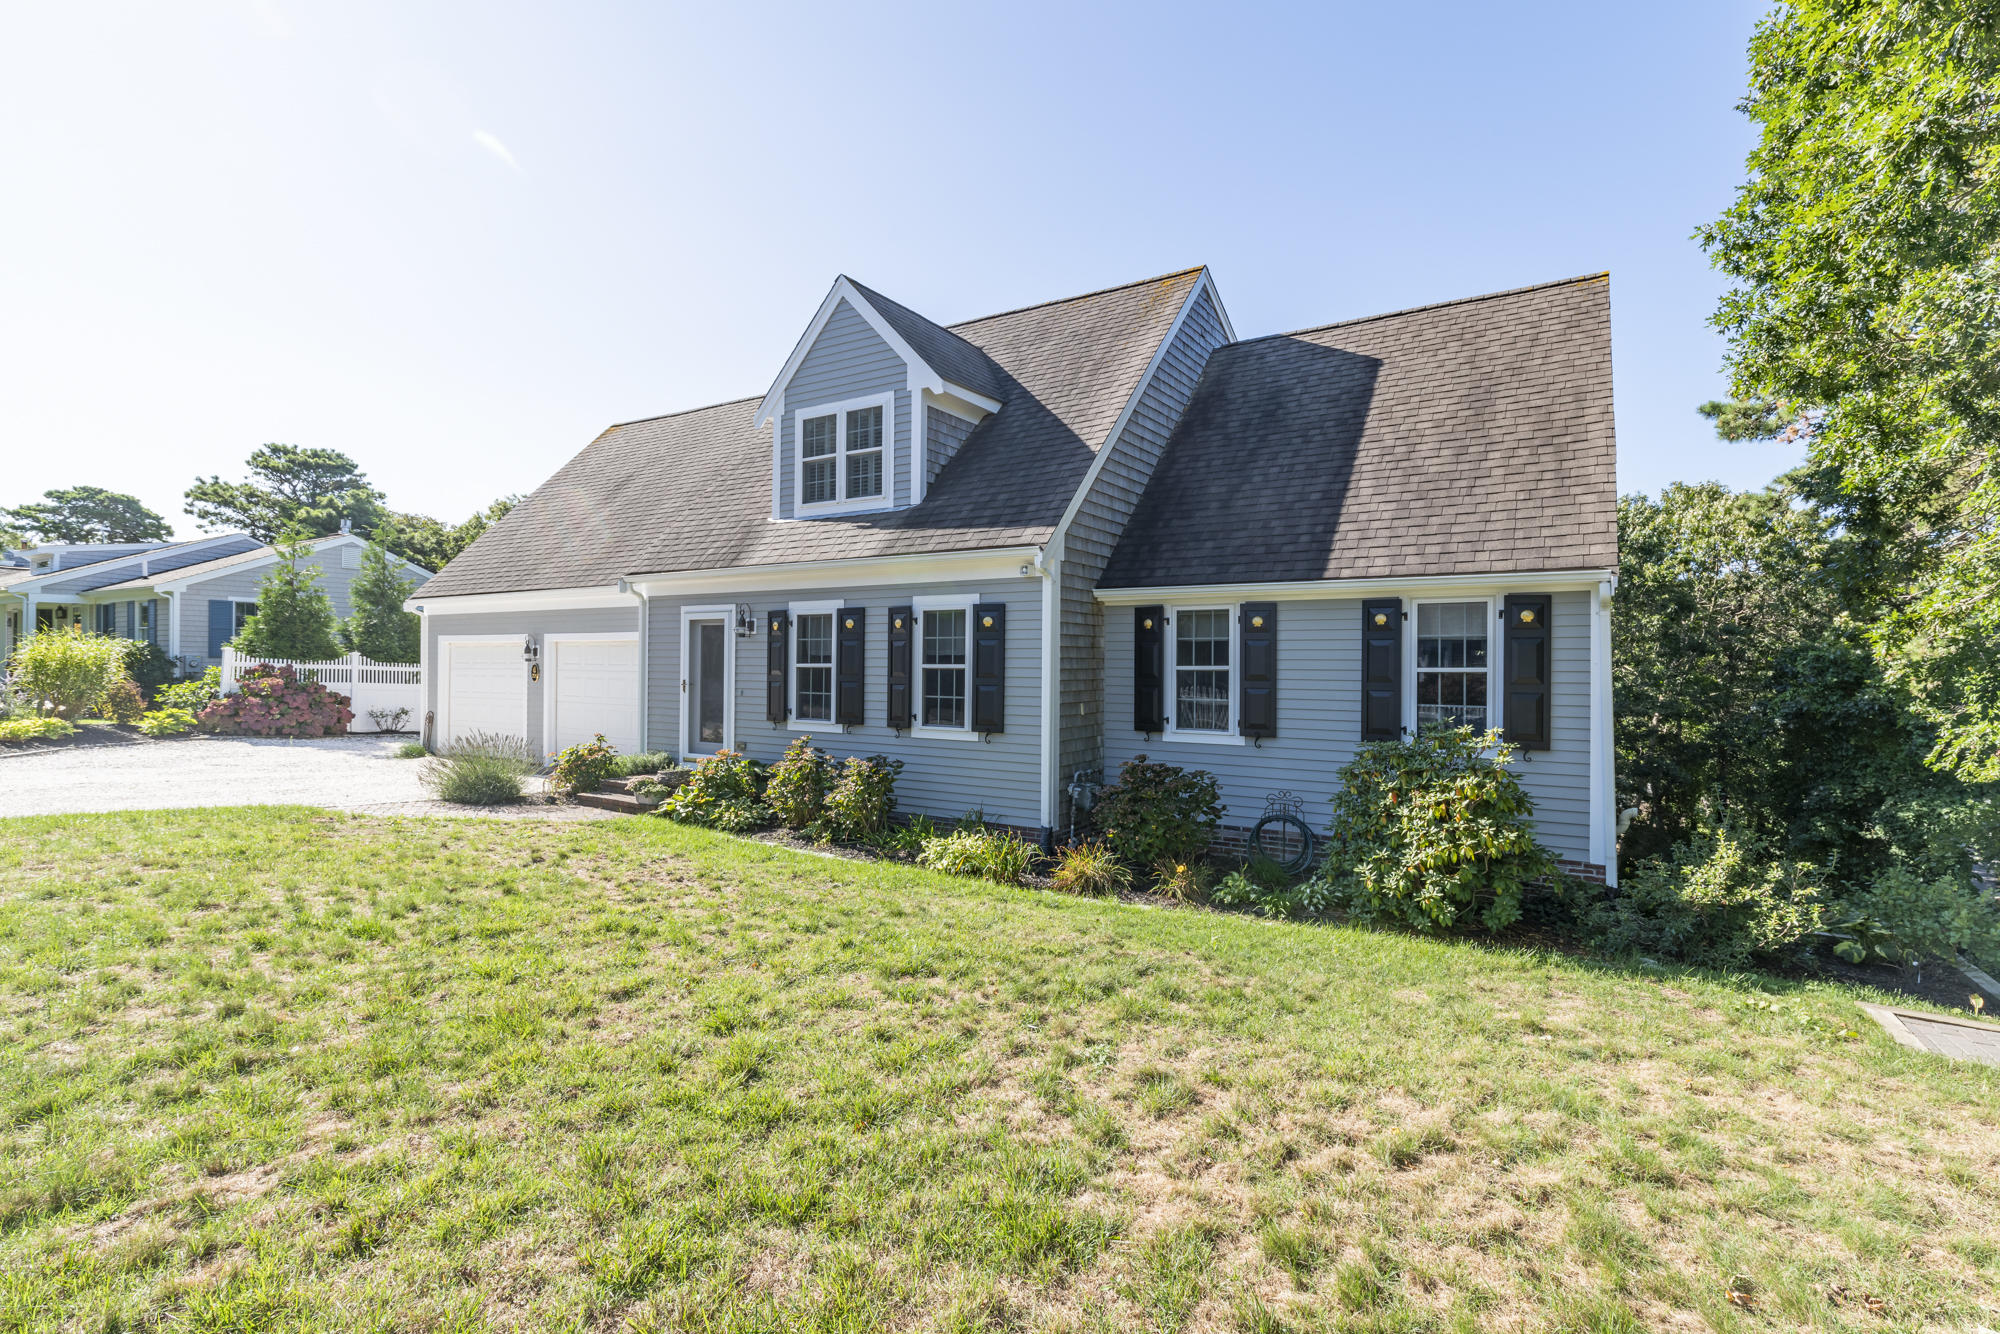 100 Old Mail Road, North Chatham, MA  02650 - slide 29